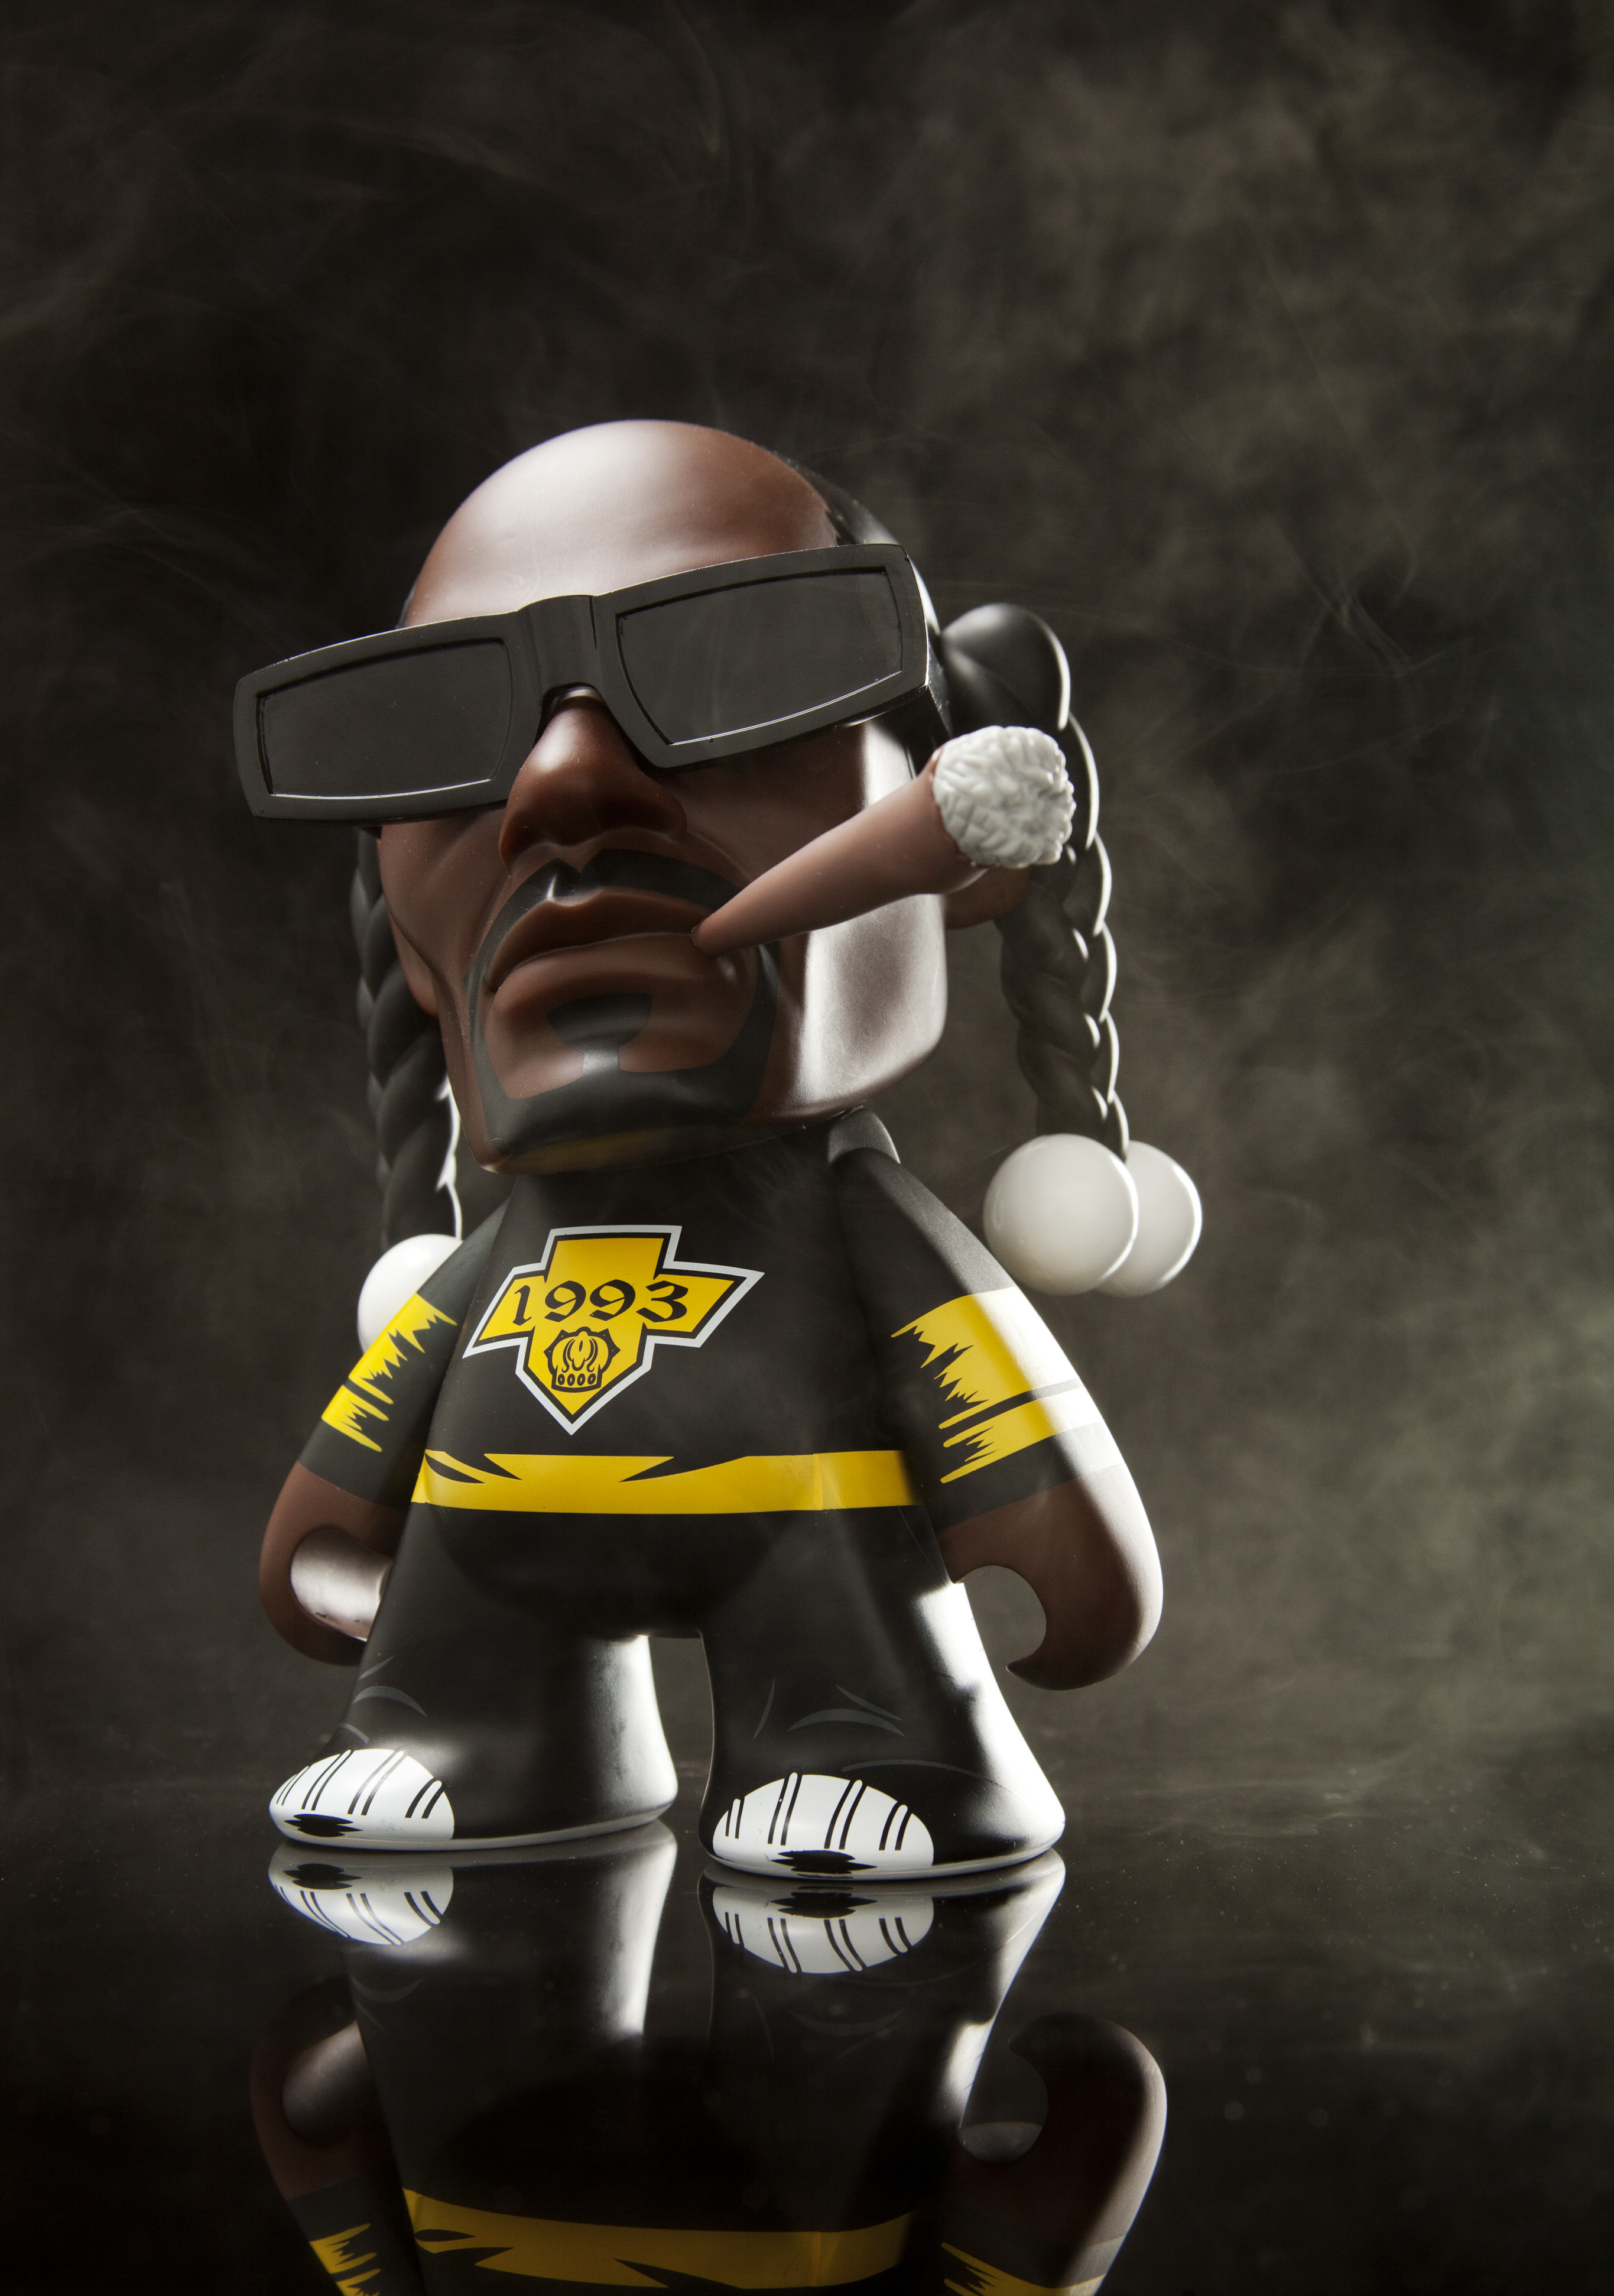 Snoop Dogg Action Figures Toys Snoop Dogg Art Toy